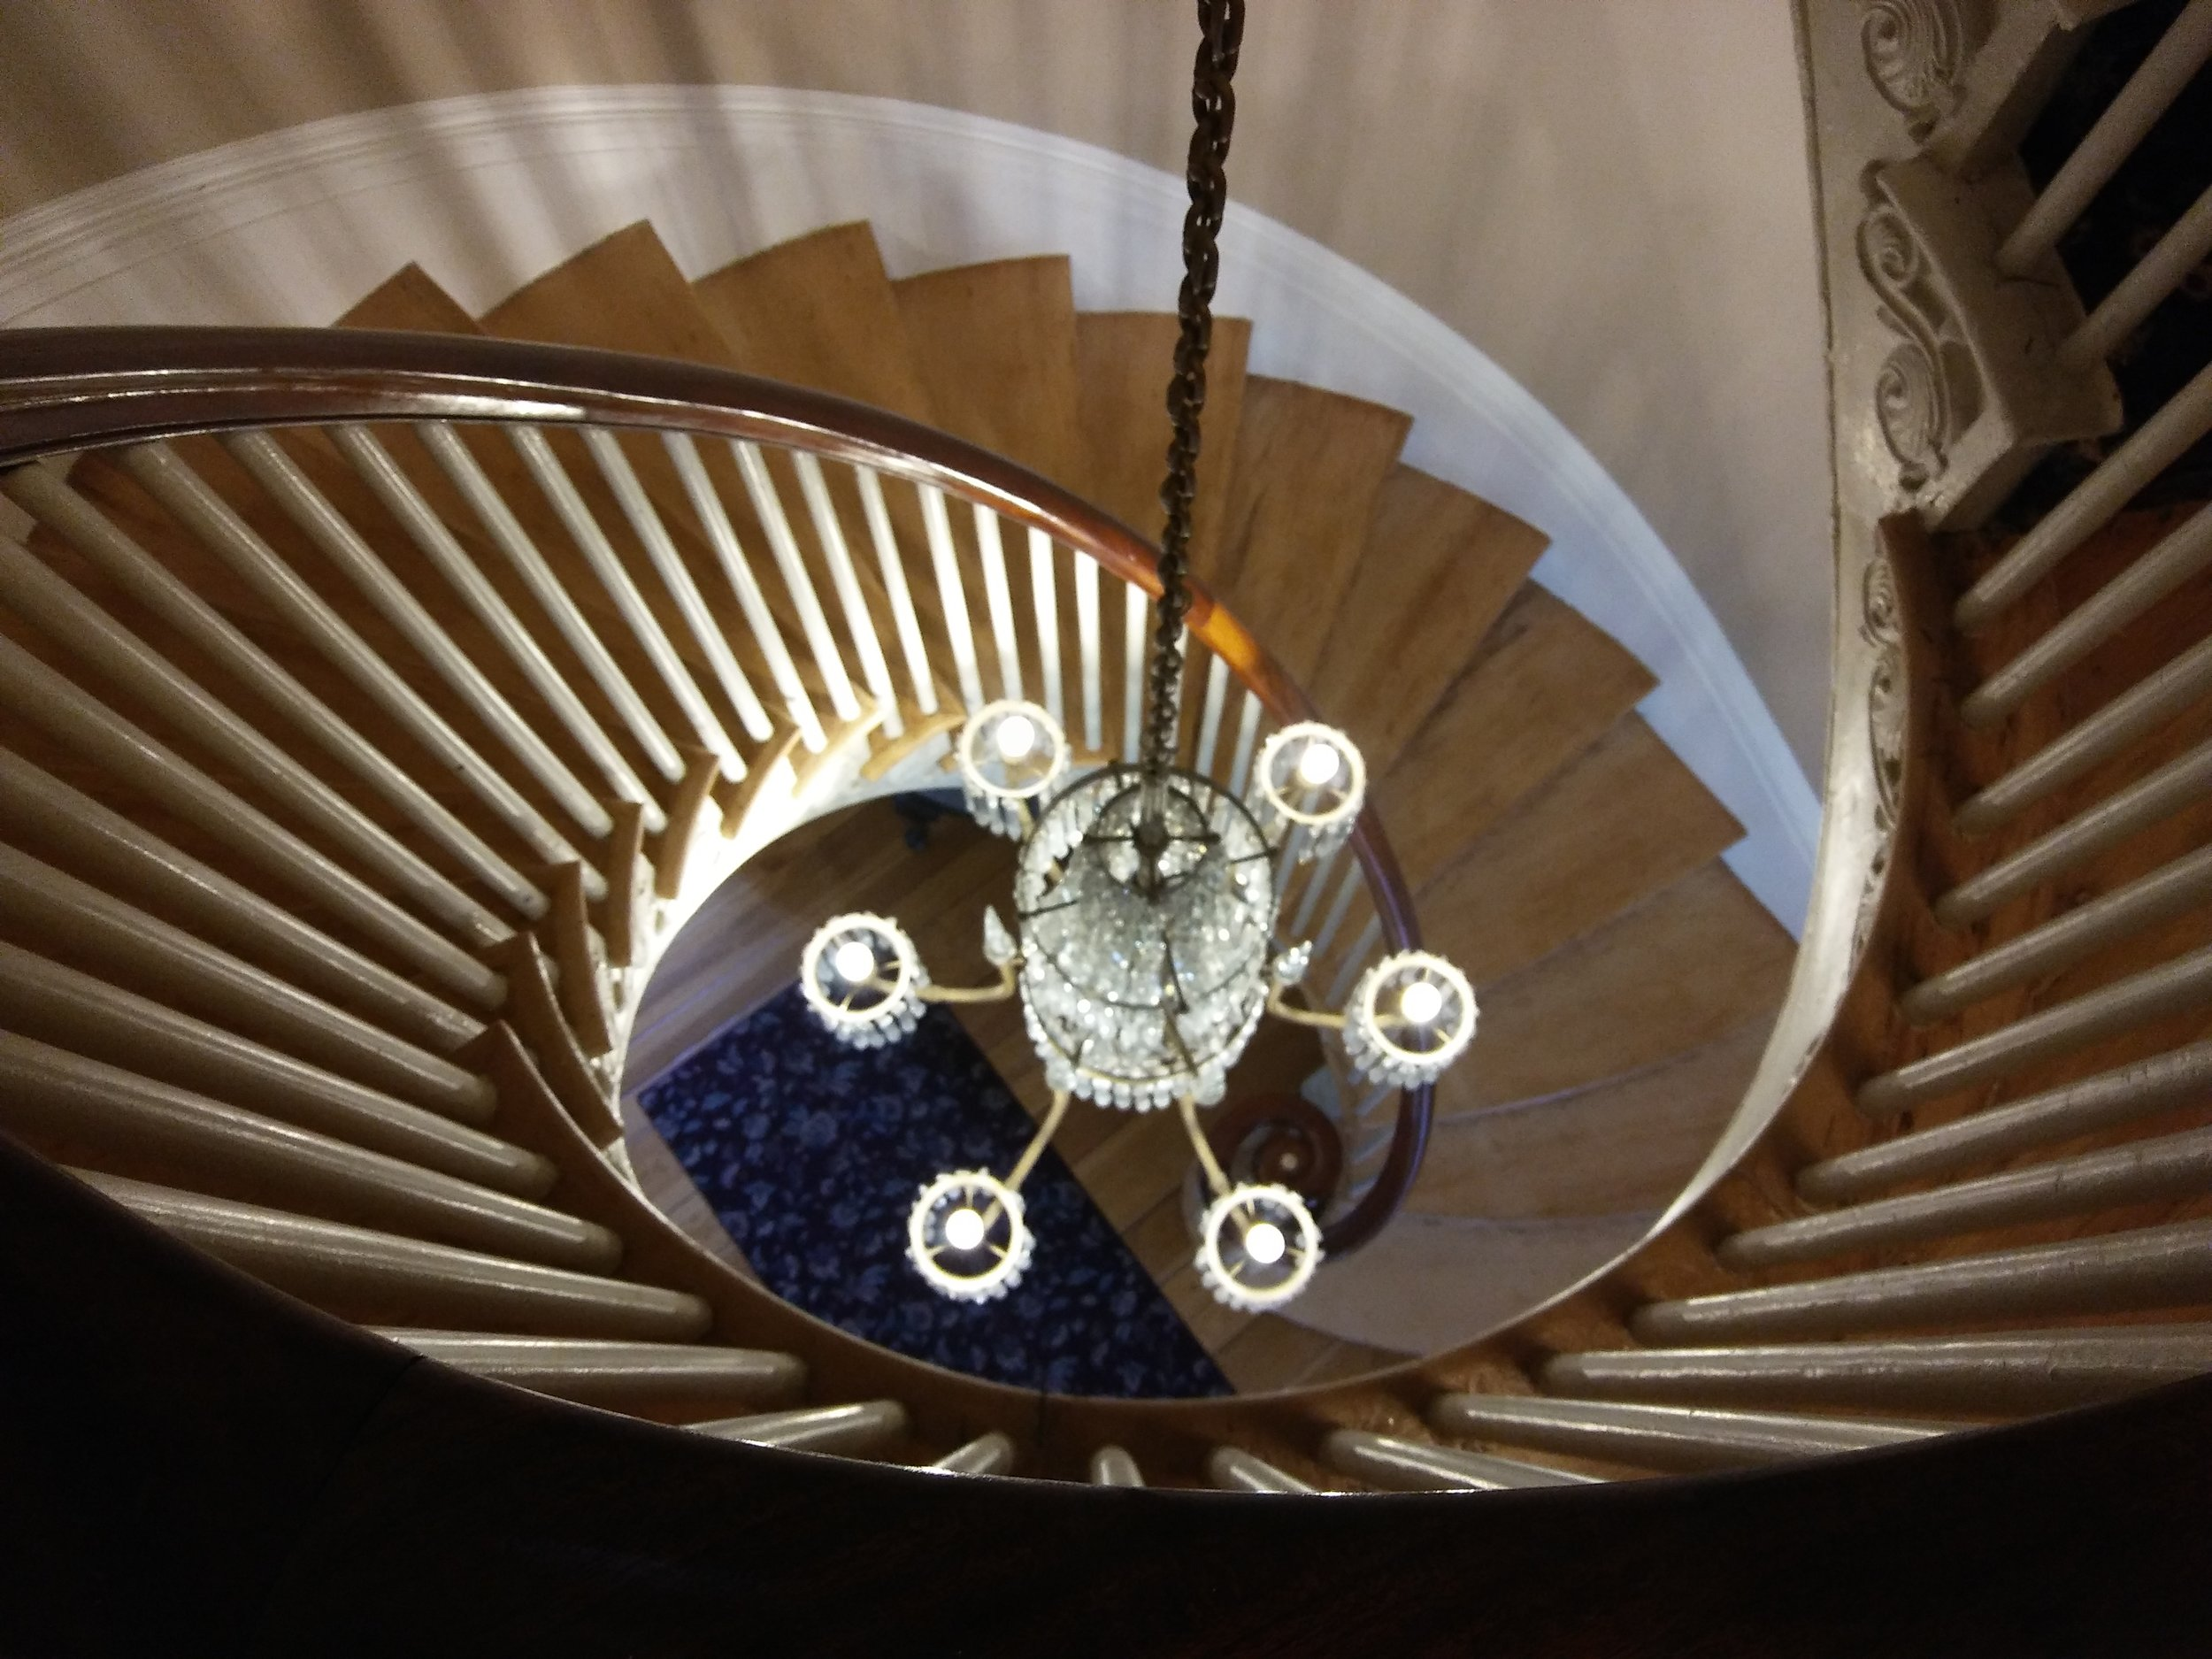 The Grand Staircase with central chandelier. Photo: Mary Bowen, Asa Waters Mansion.